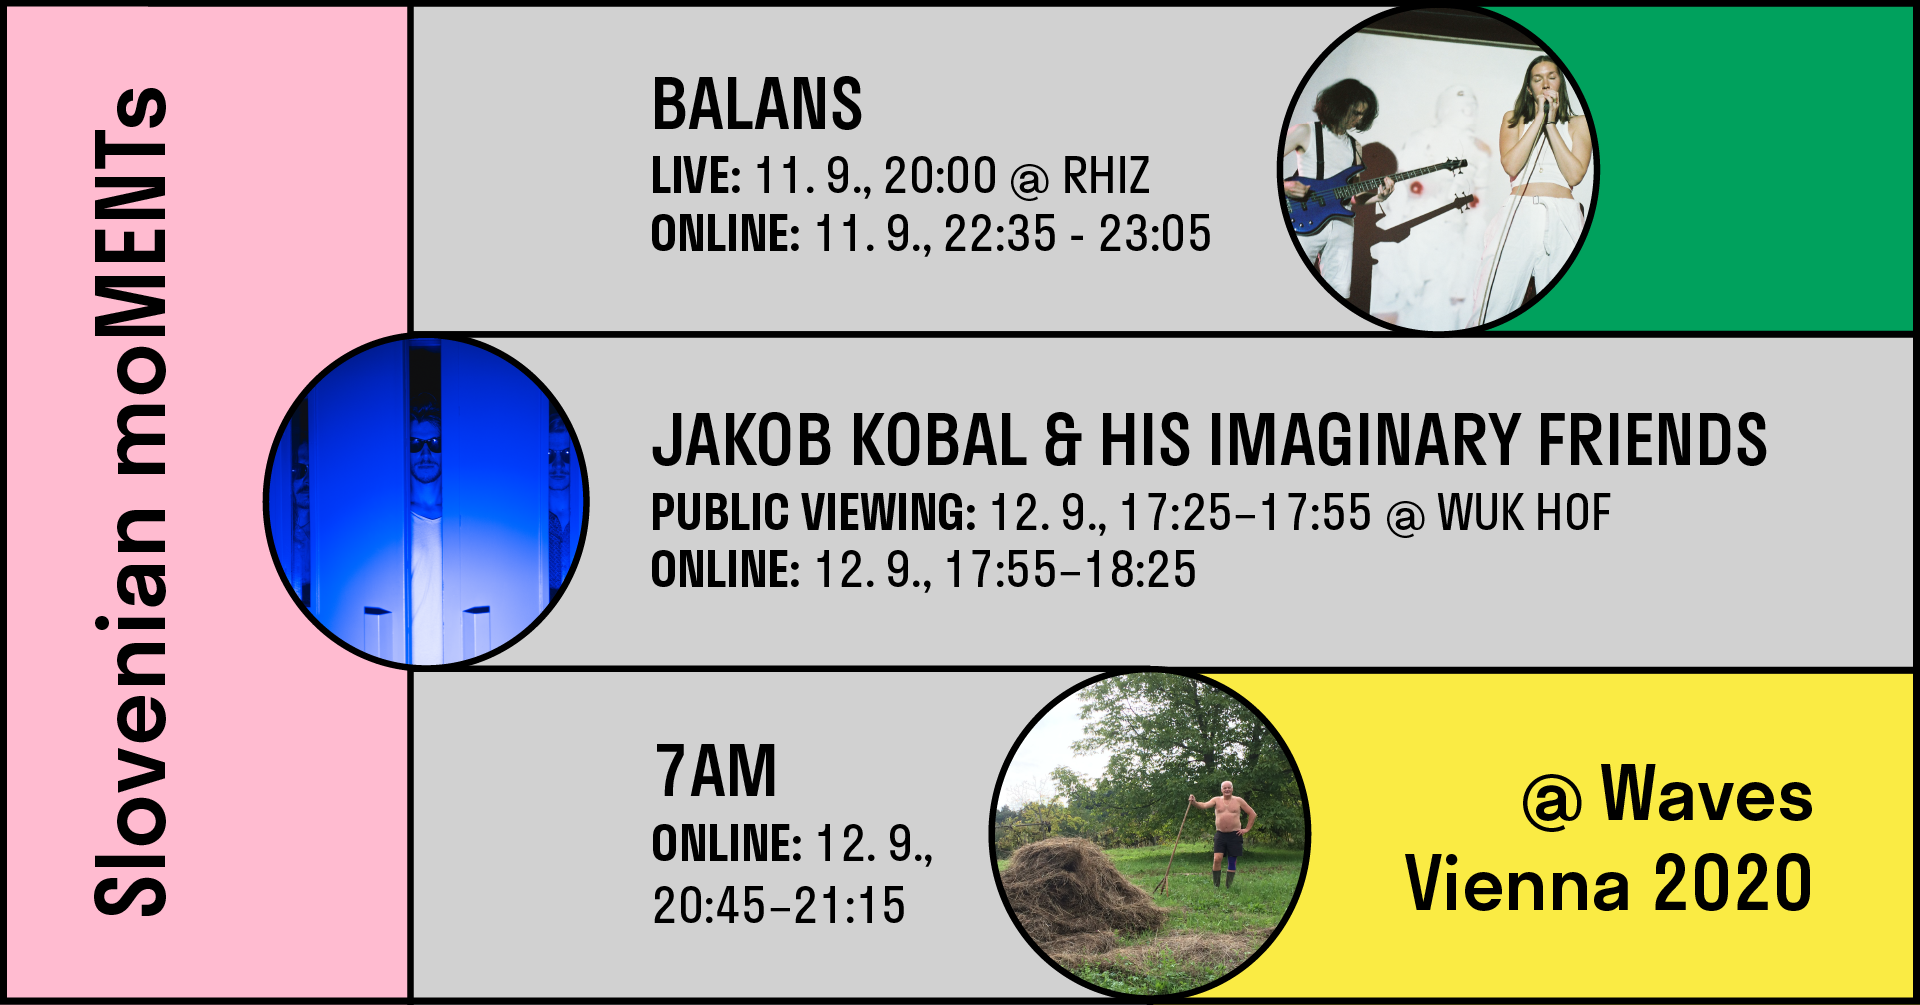 Slovenian moMENTs @ Waves Vienna, balans, jakob kobal & 7AM